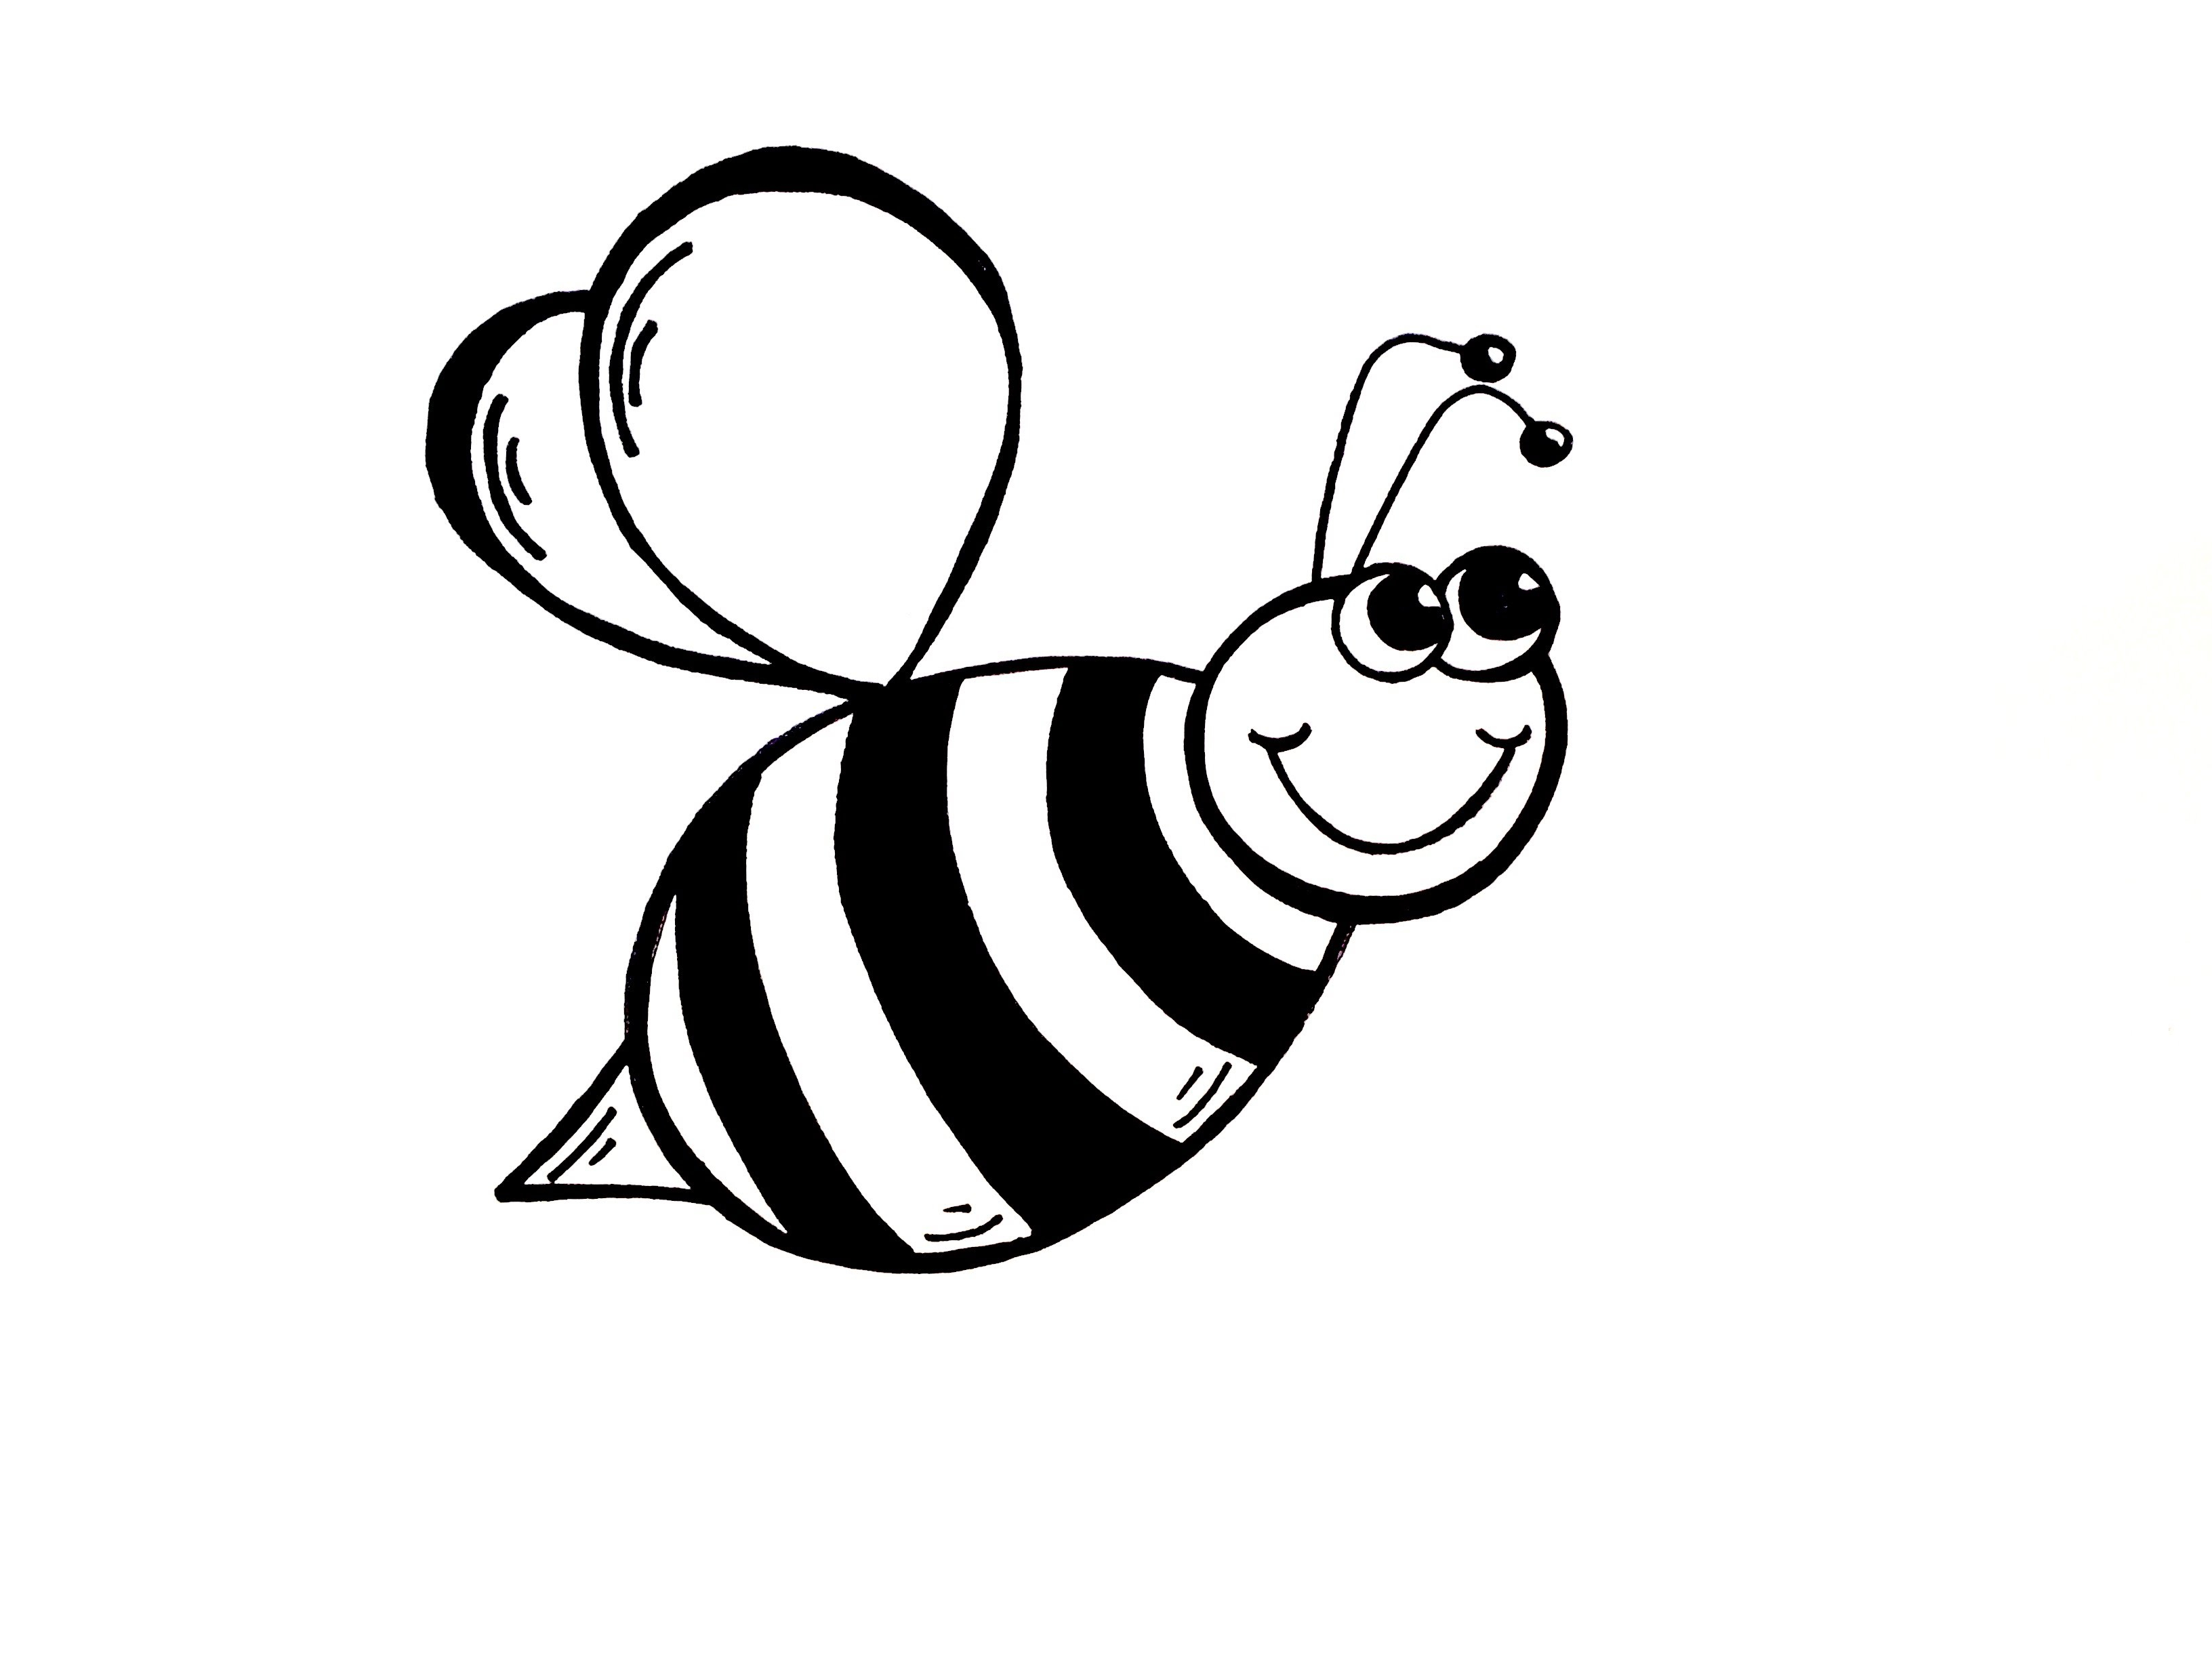 Bees clipart black and white, Bees black and white.